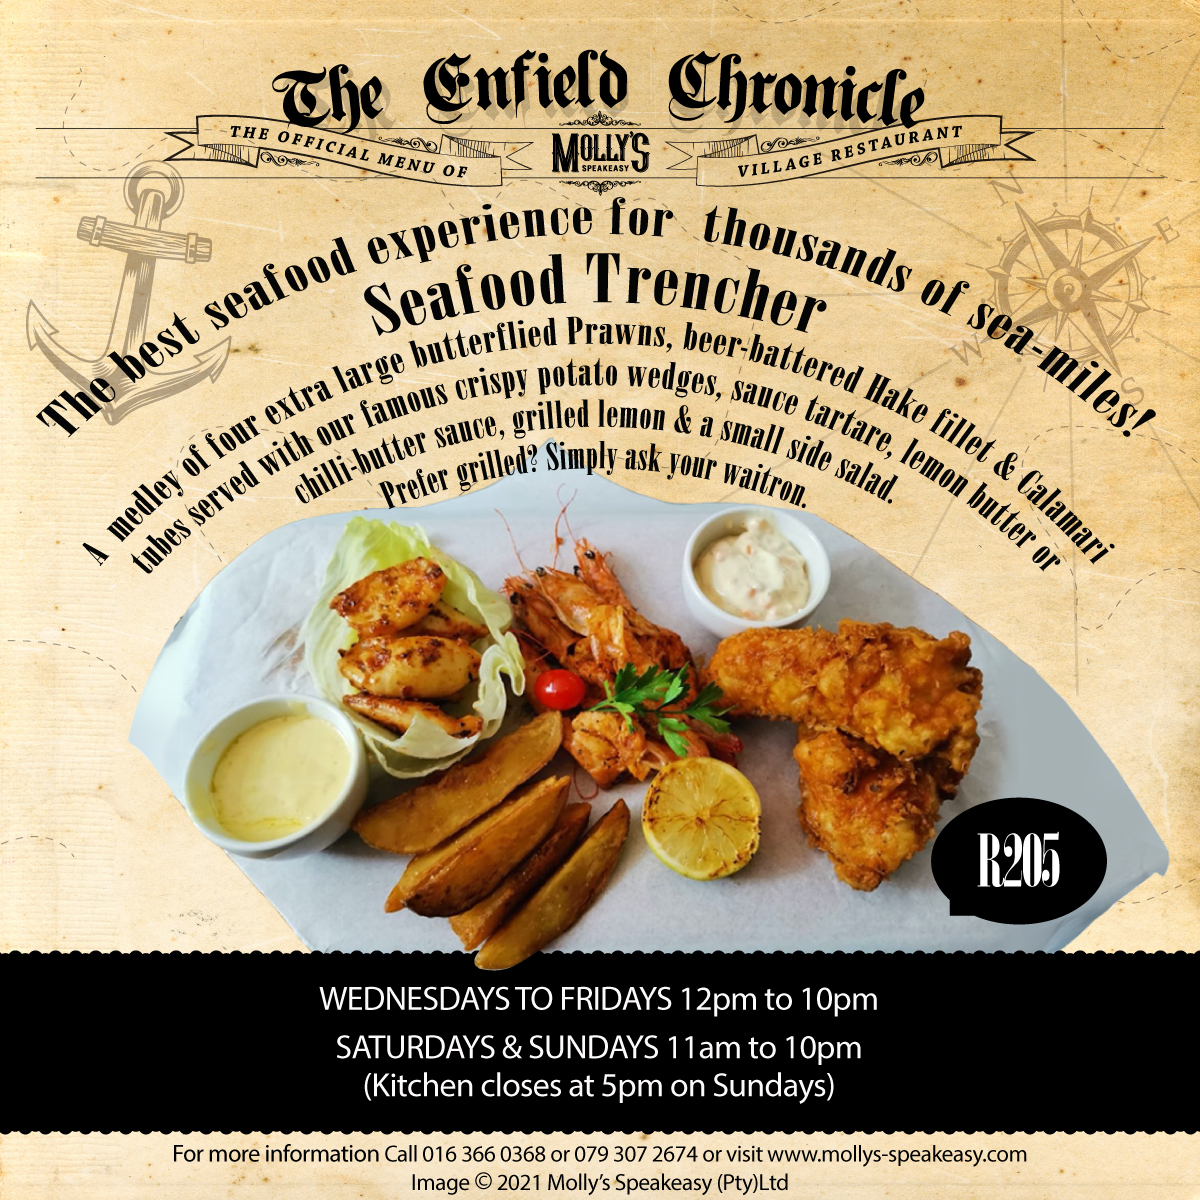 Seafood Trencher